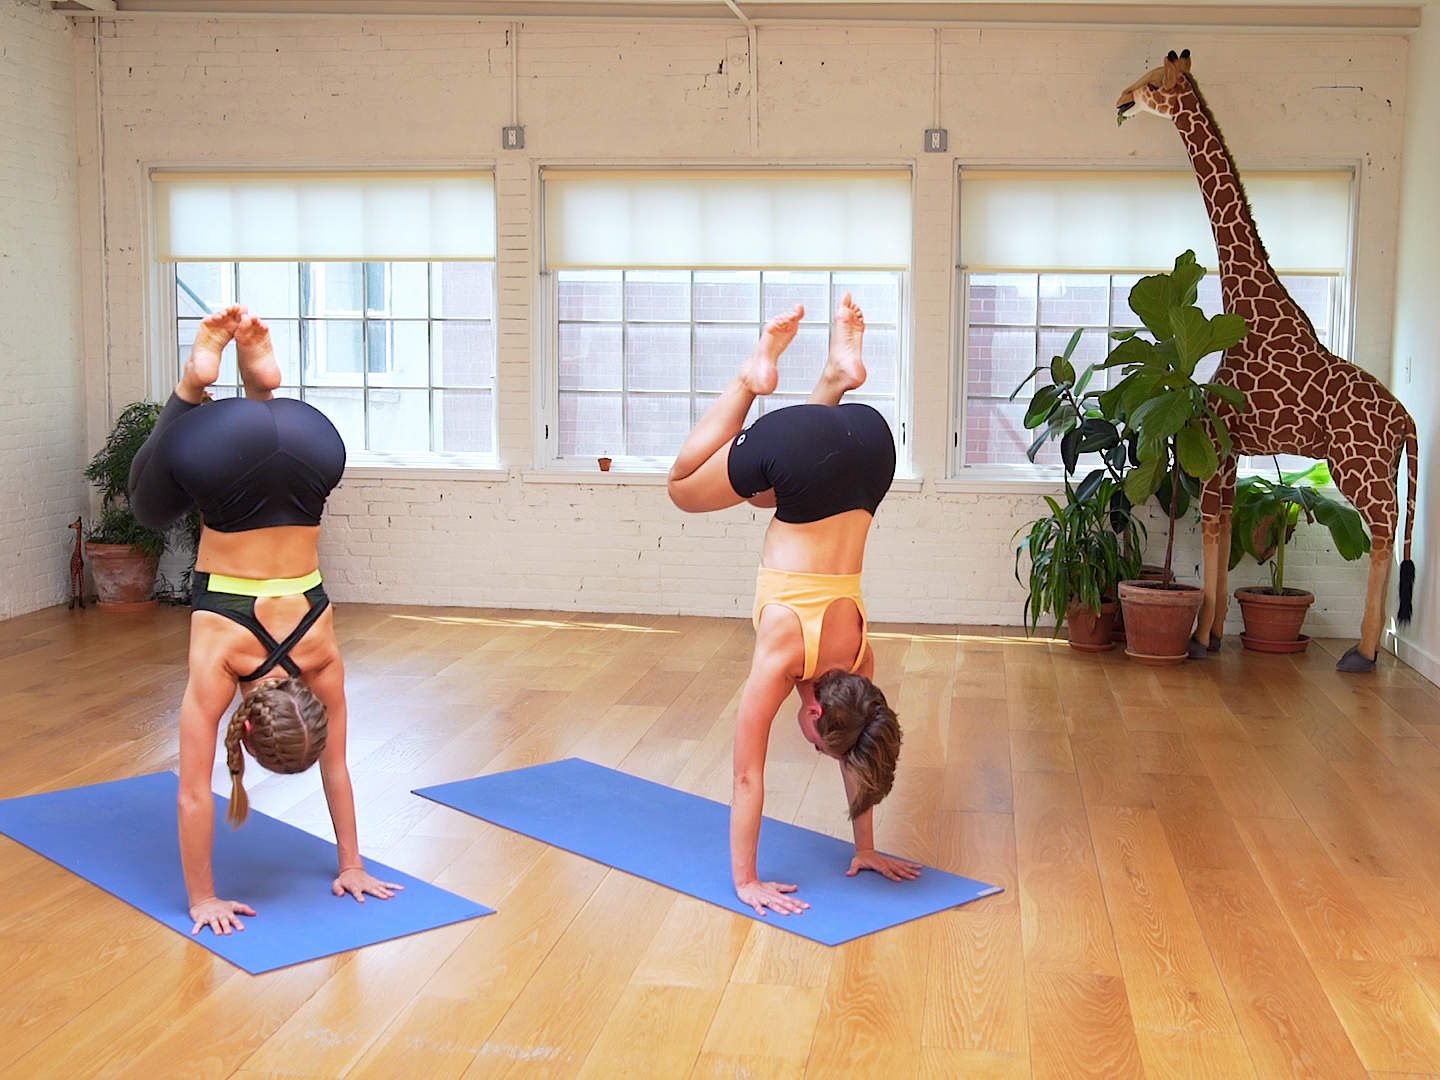 Sky Ting's Cardio Yoga Workout Will Give You The Stretch You Crave With the Sweat You Need